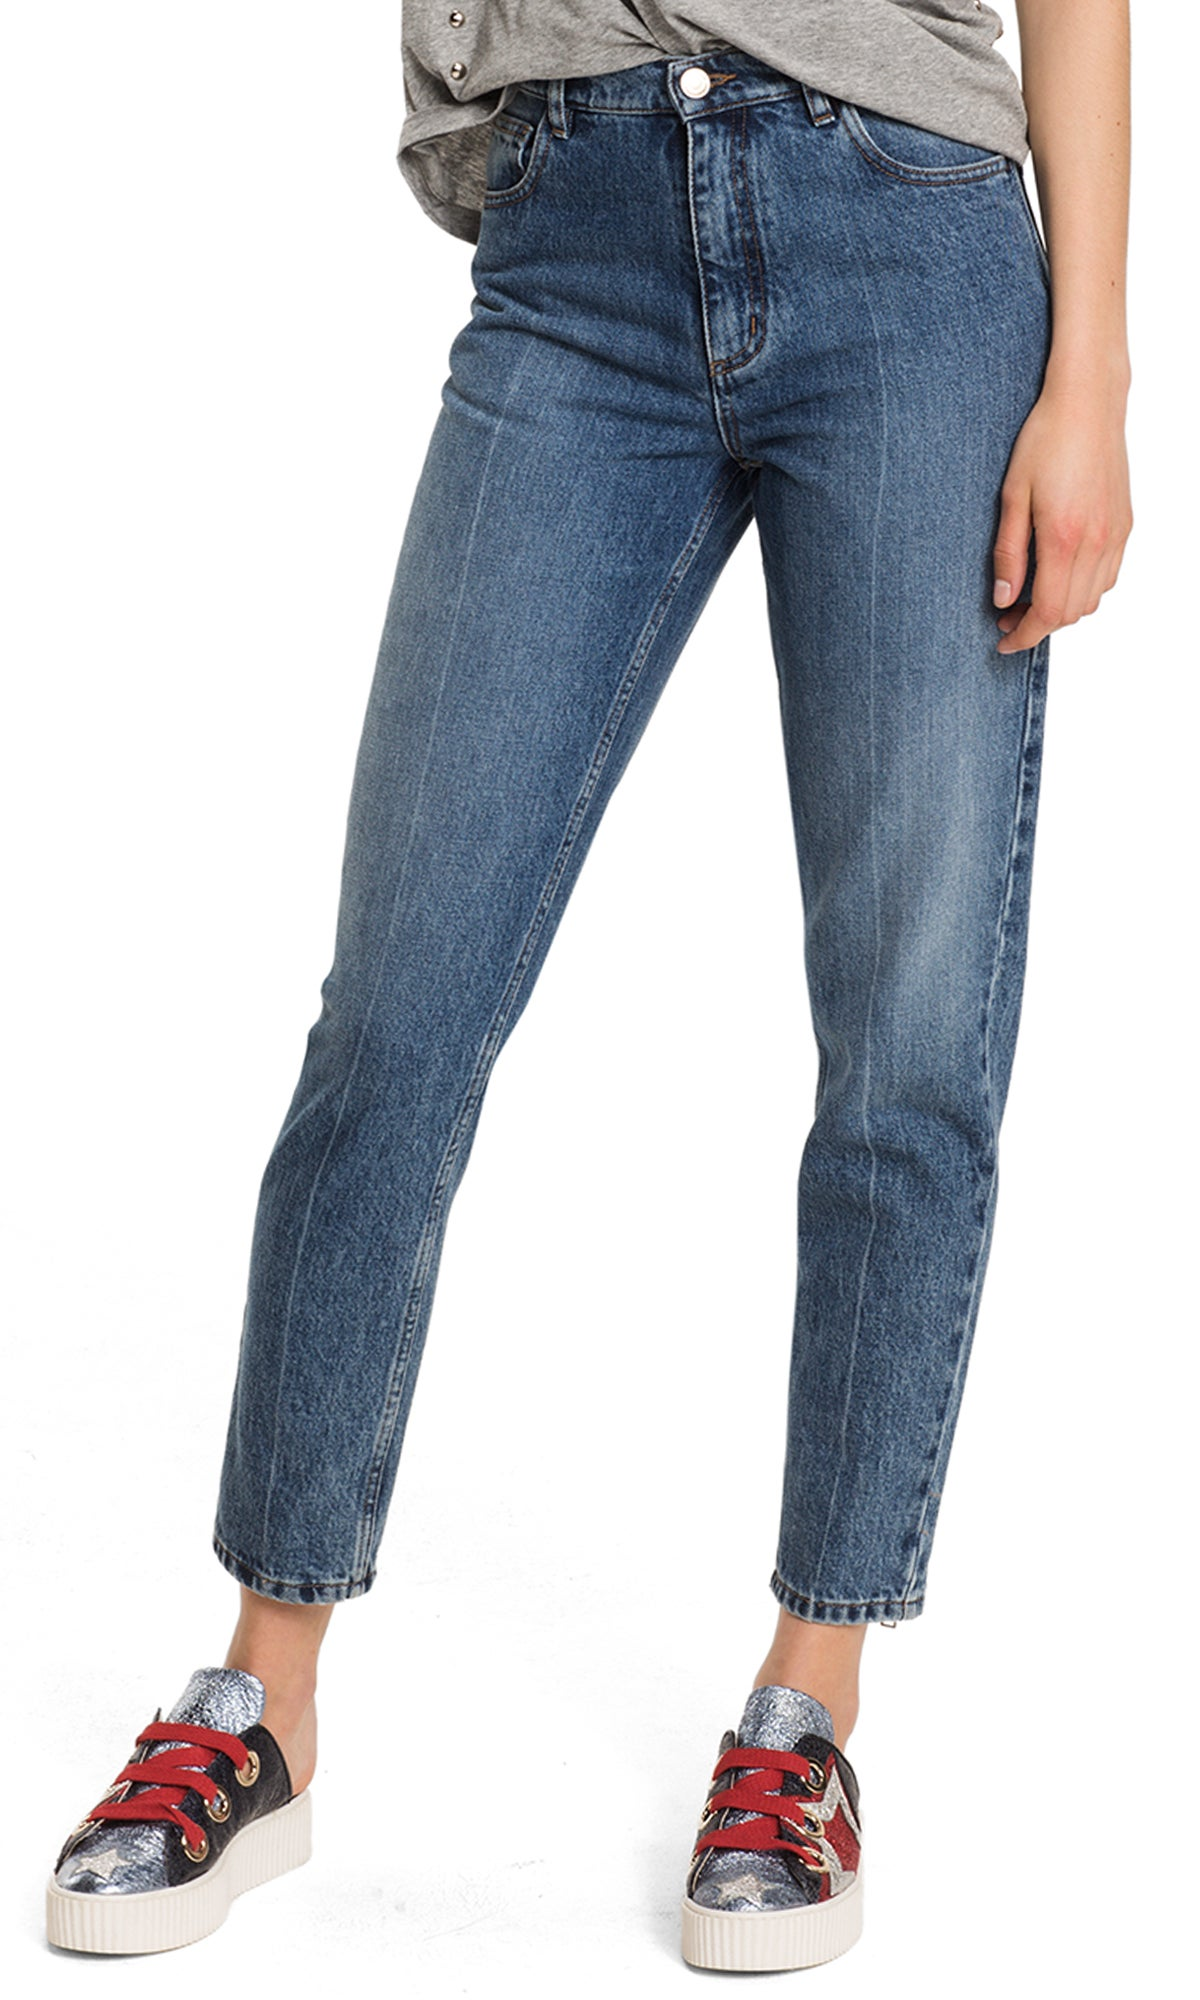 Women's cropped fit jeans